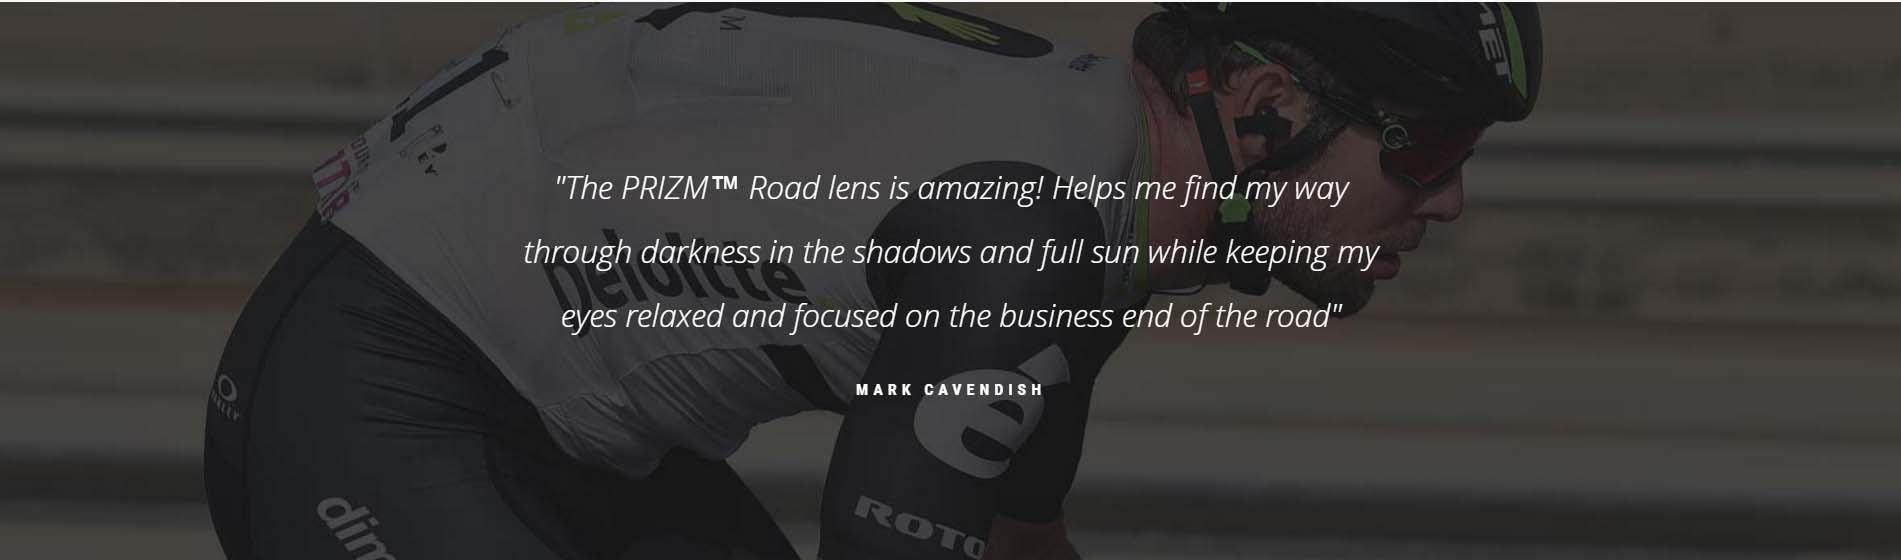 """The PRIZM™ Road lens is amazing! Helps me find my way through darkness in the shadows and full sun while keeping my eyes relaxed and focused on the business end of the road"" MARK CAVENDISH"